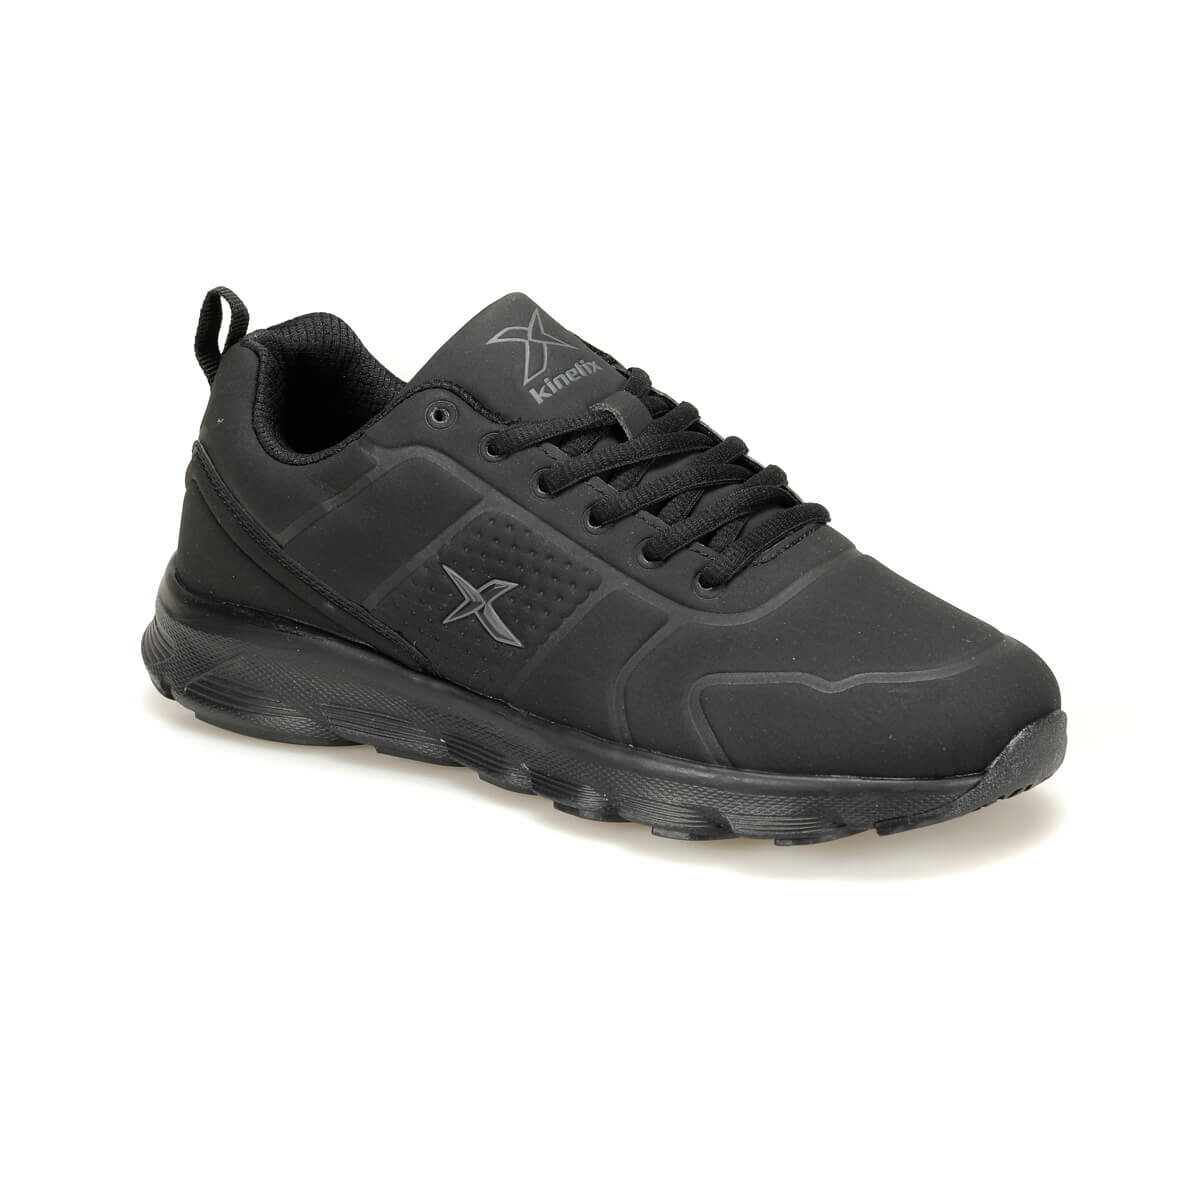 FLO ALMERA II Black Men 'S Sneaker Shoes KINETIX